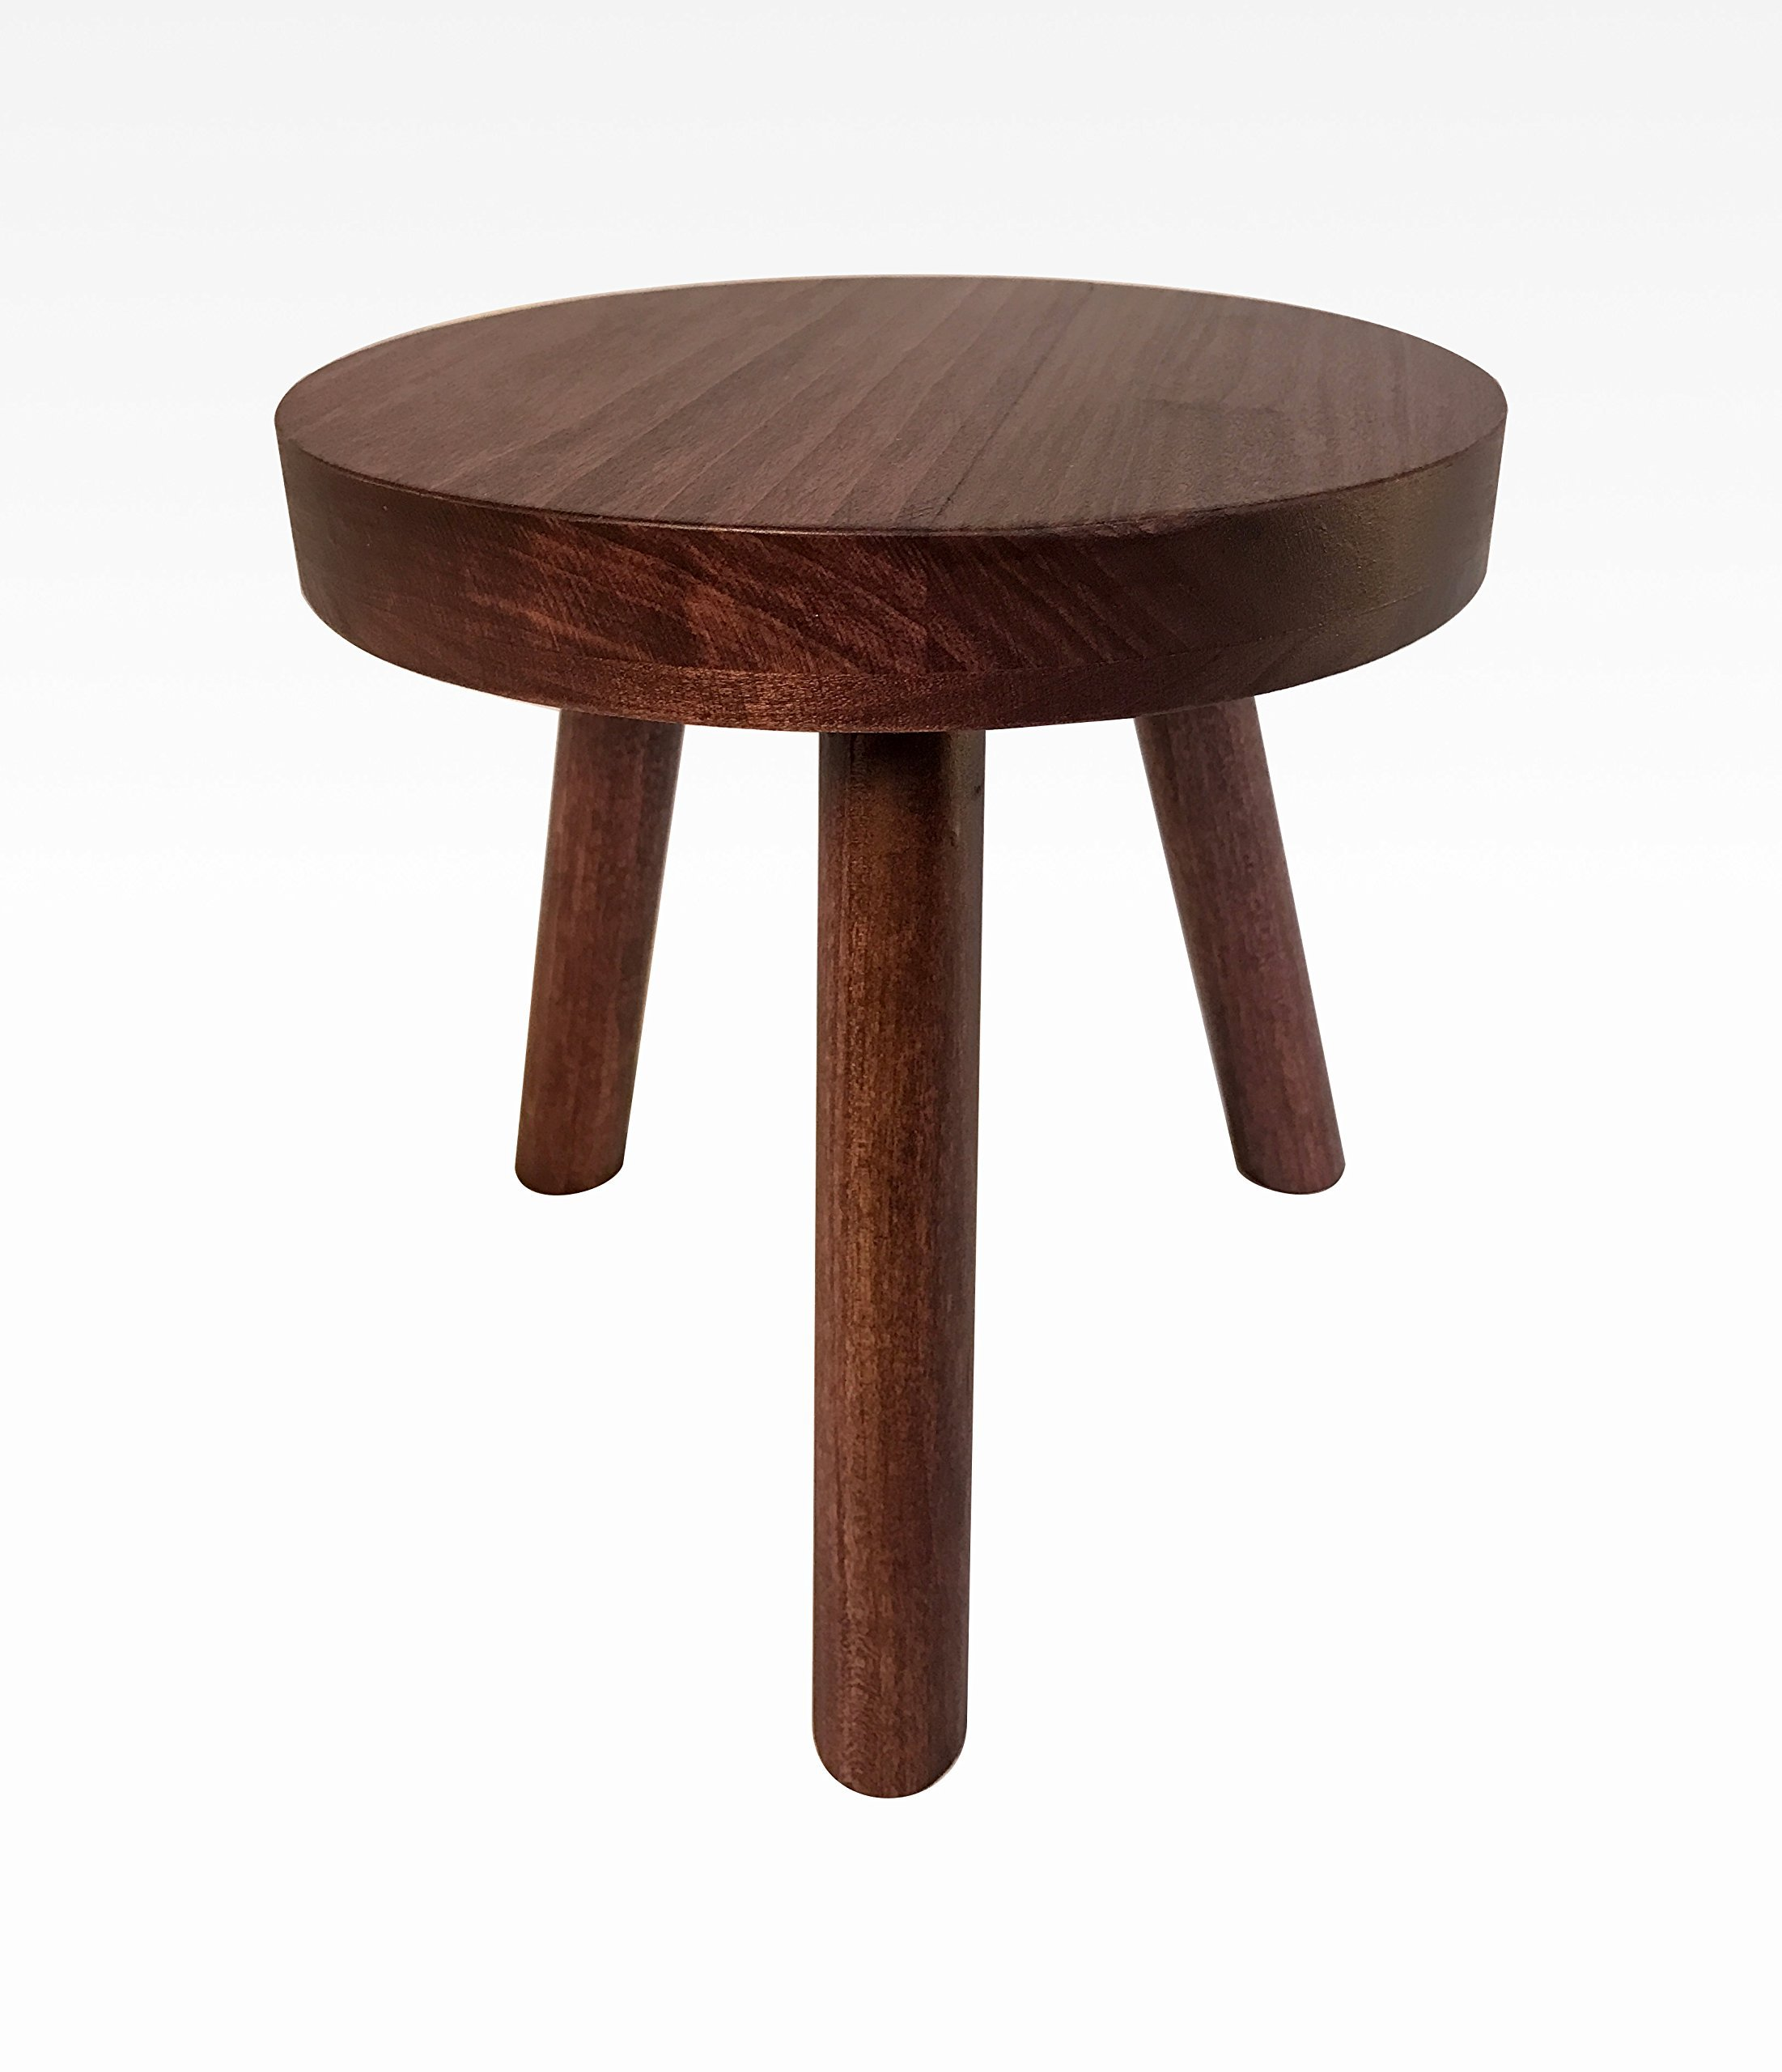 Small Wood Three Legged Stool, Modern Plant Stand in Black Cherry by Candlewood Furniture, Wooden, Tea Table, Kids Chair, Decorative